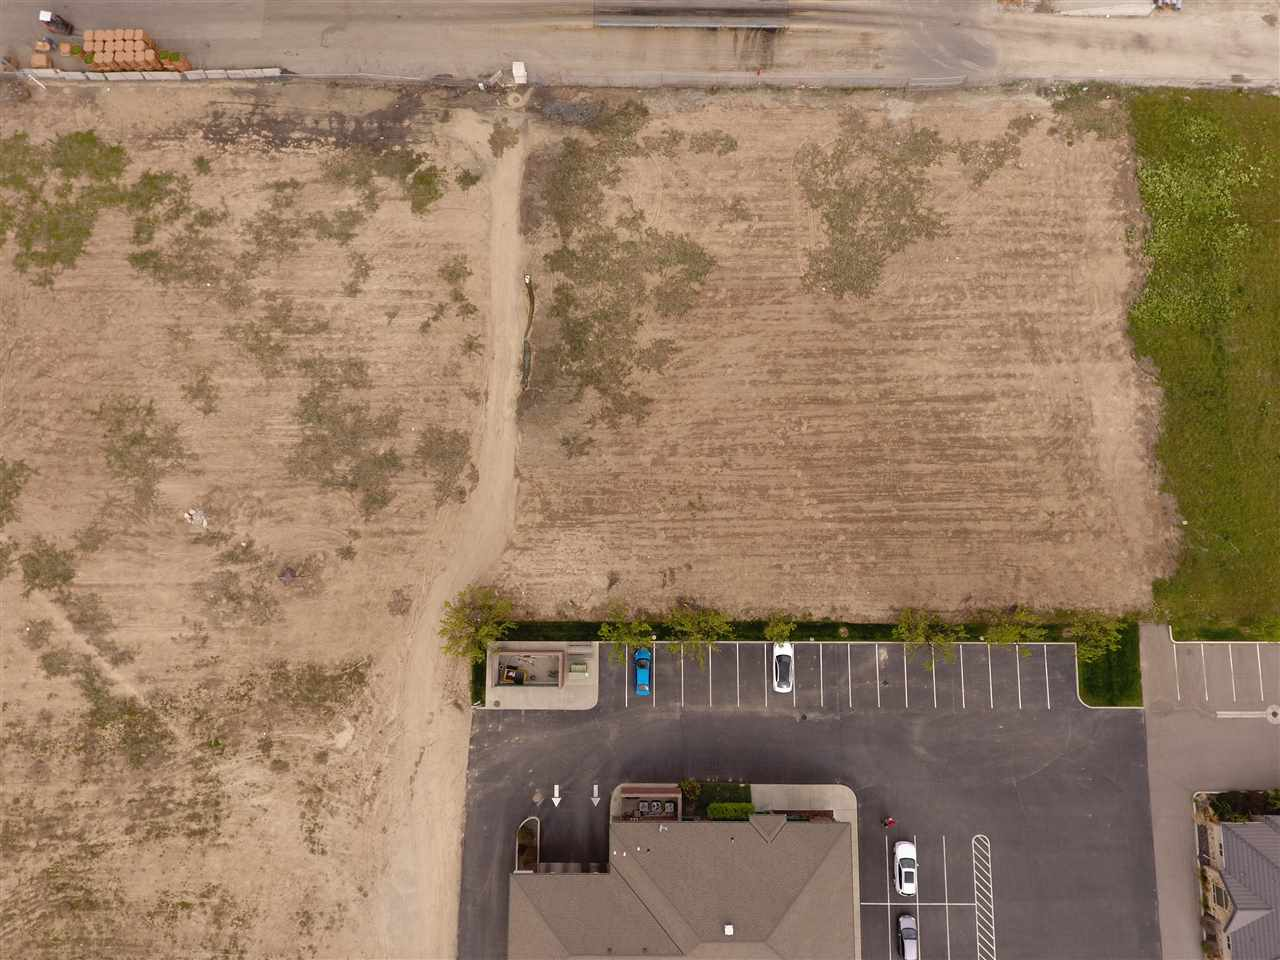 Terreno por un Venta en Tbd-L 7 N Whitley Lot 7 Fruitland, Idaho 83619